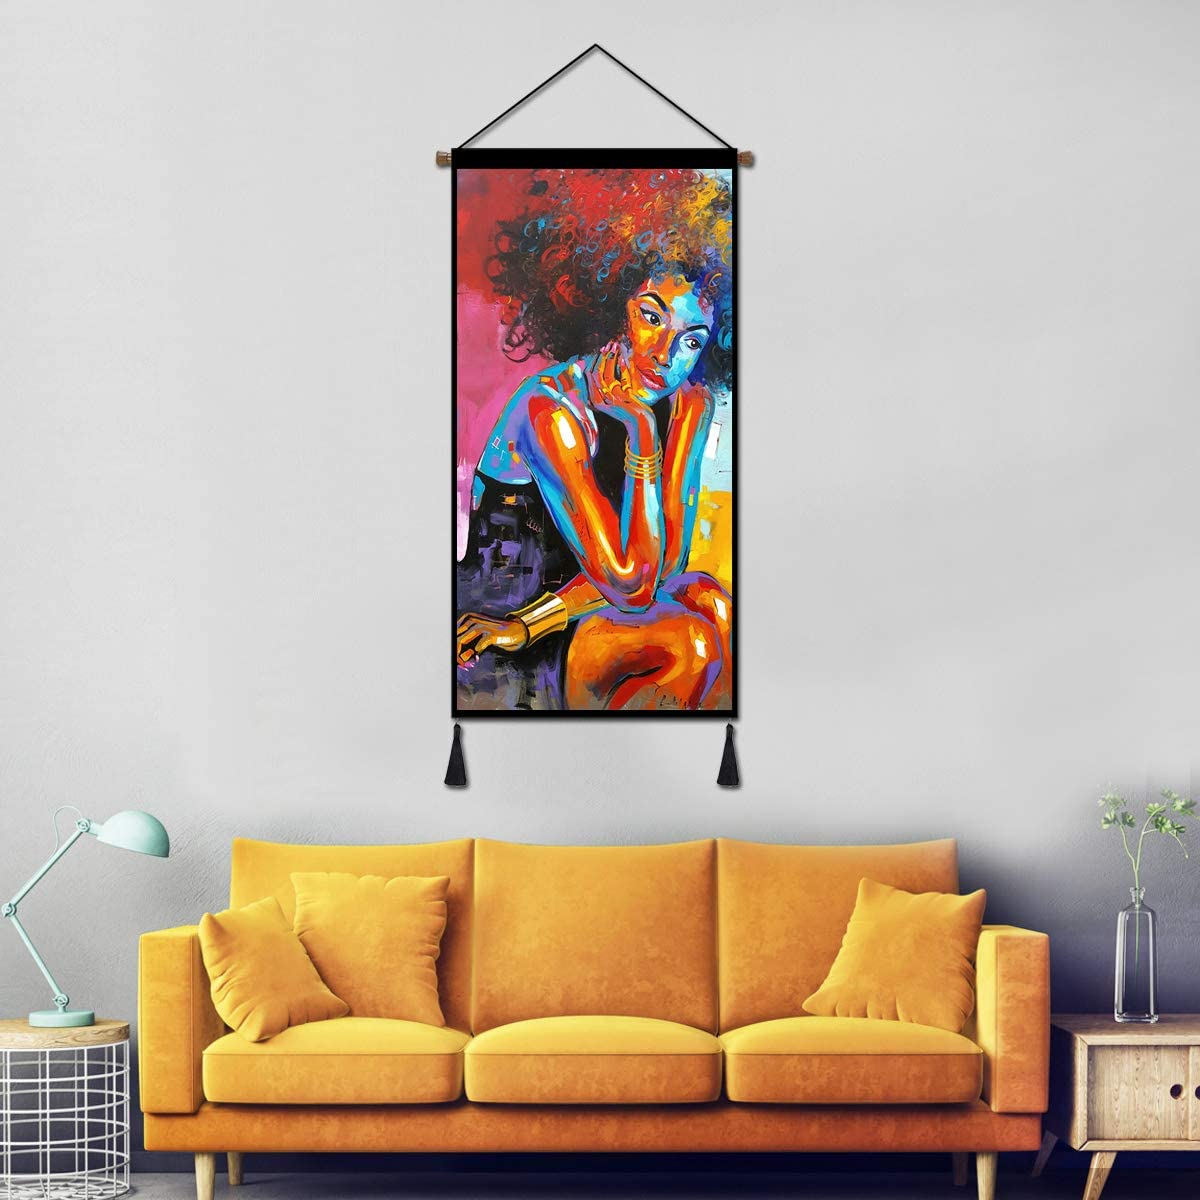 Vintage Hanging Poster Canvas Wall Art, African King and Queen Oil Painting Prints Tapestry Linen Scroll with Tassels, Decoration for Home Dorm Office 18X36 Inch (African Lady Thinking)